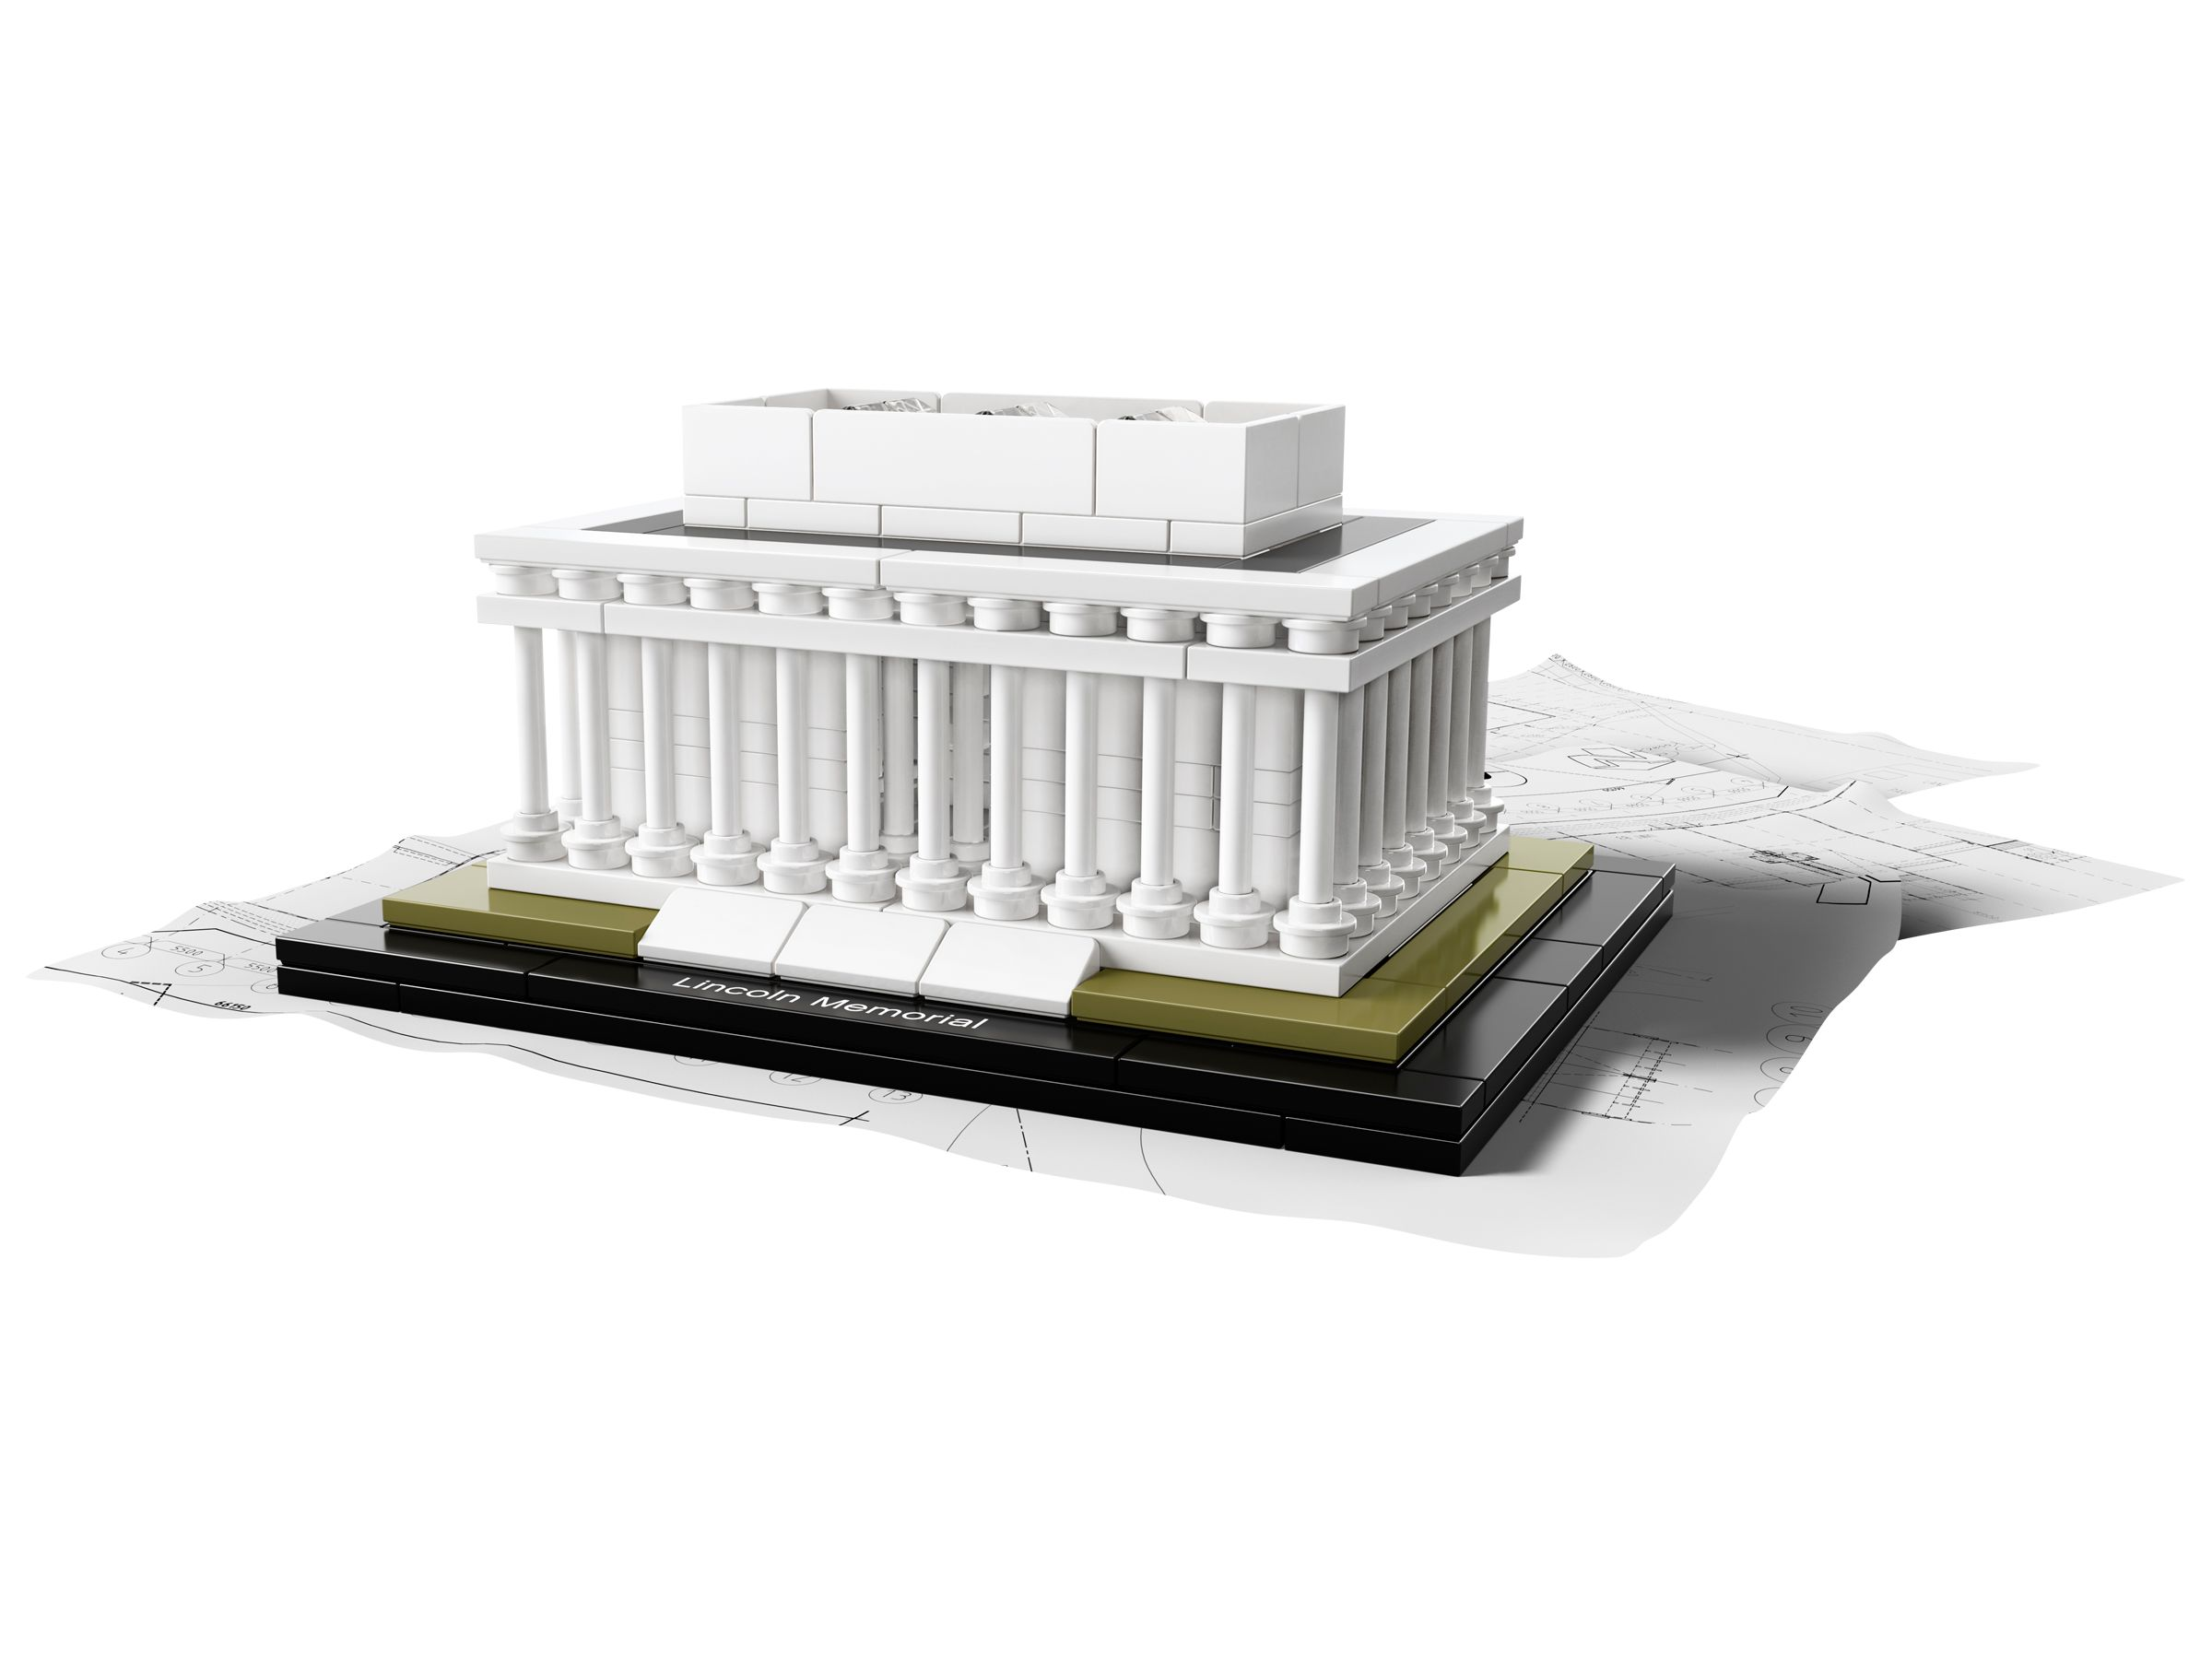 LEGO Architecture 21022 Lincoln Memorial LEGO_21022.jpg